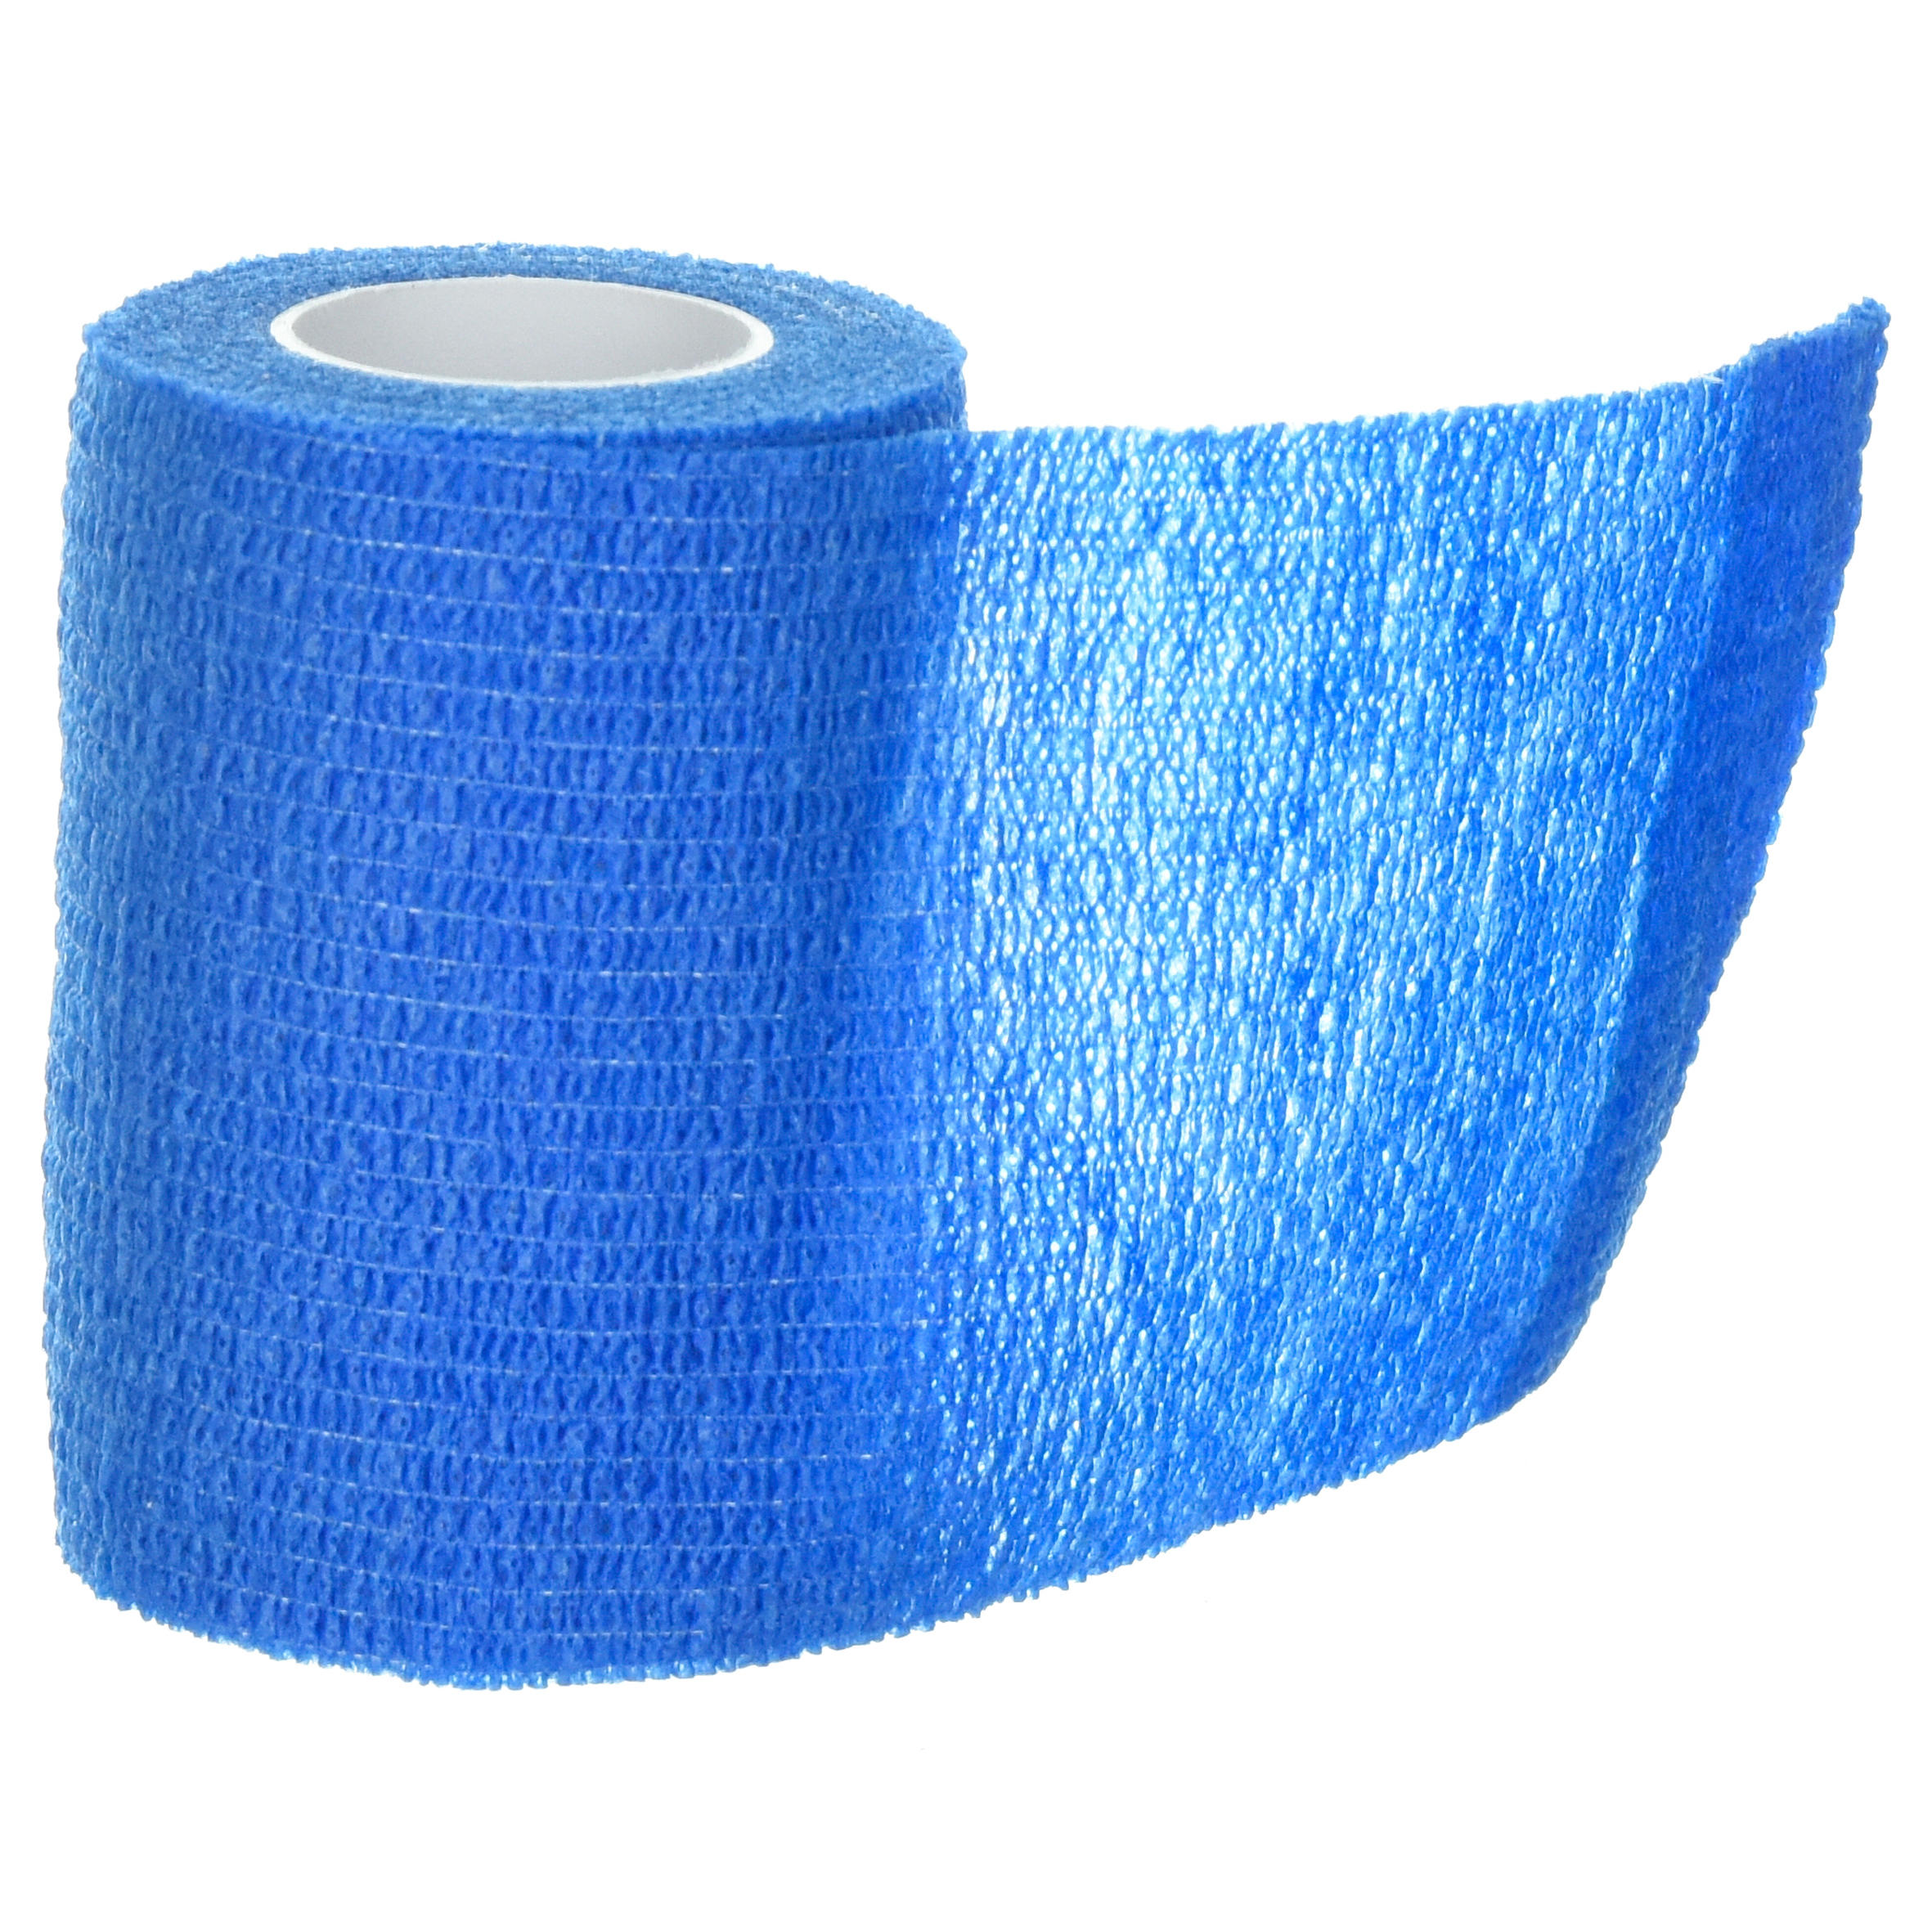 Self-Adhesive Repositionable Stretch Tape - Blue